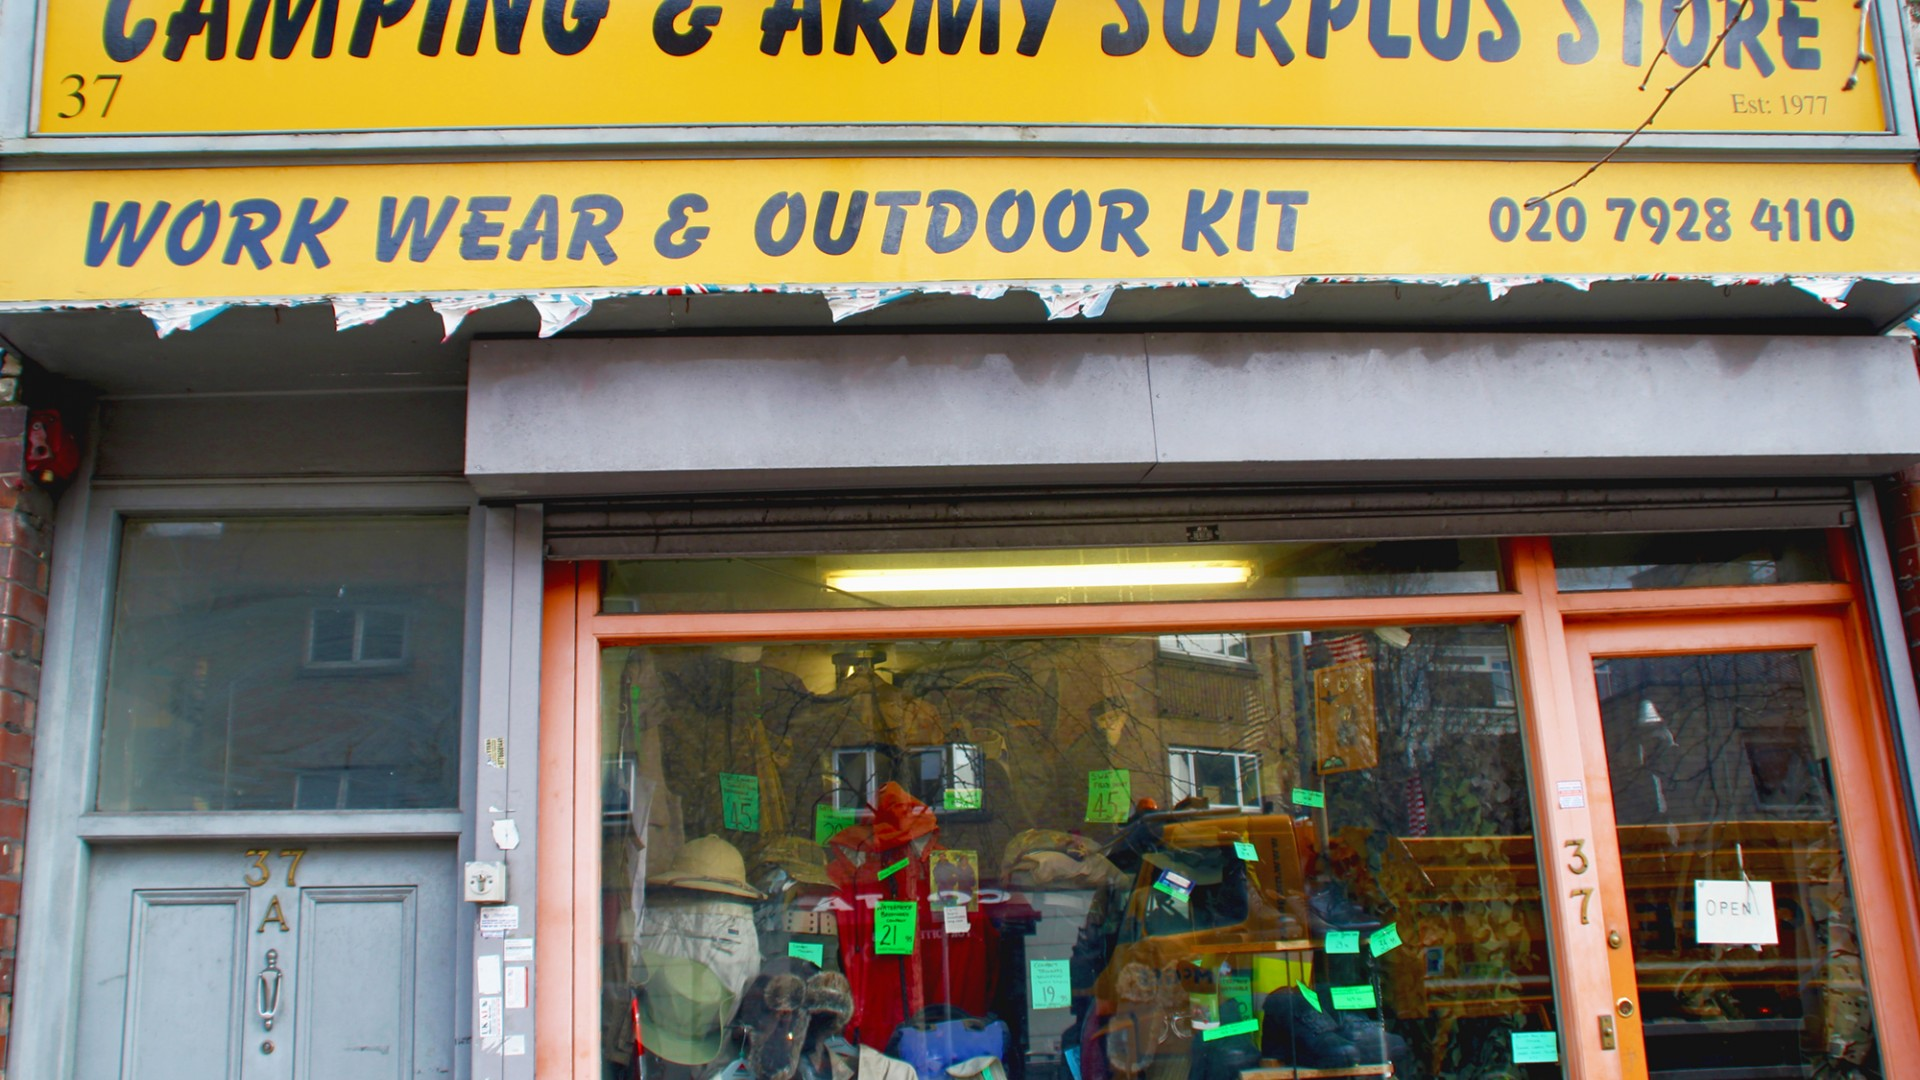 Camping and Army Surplus